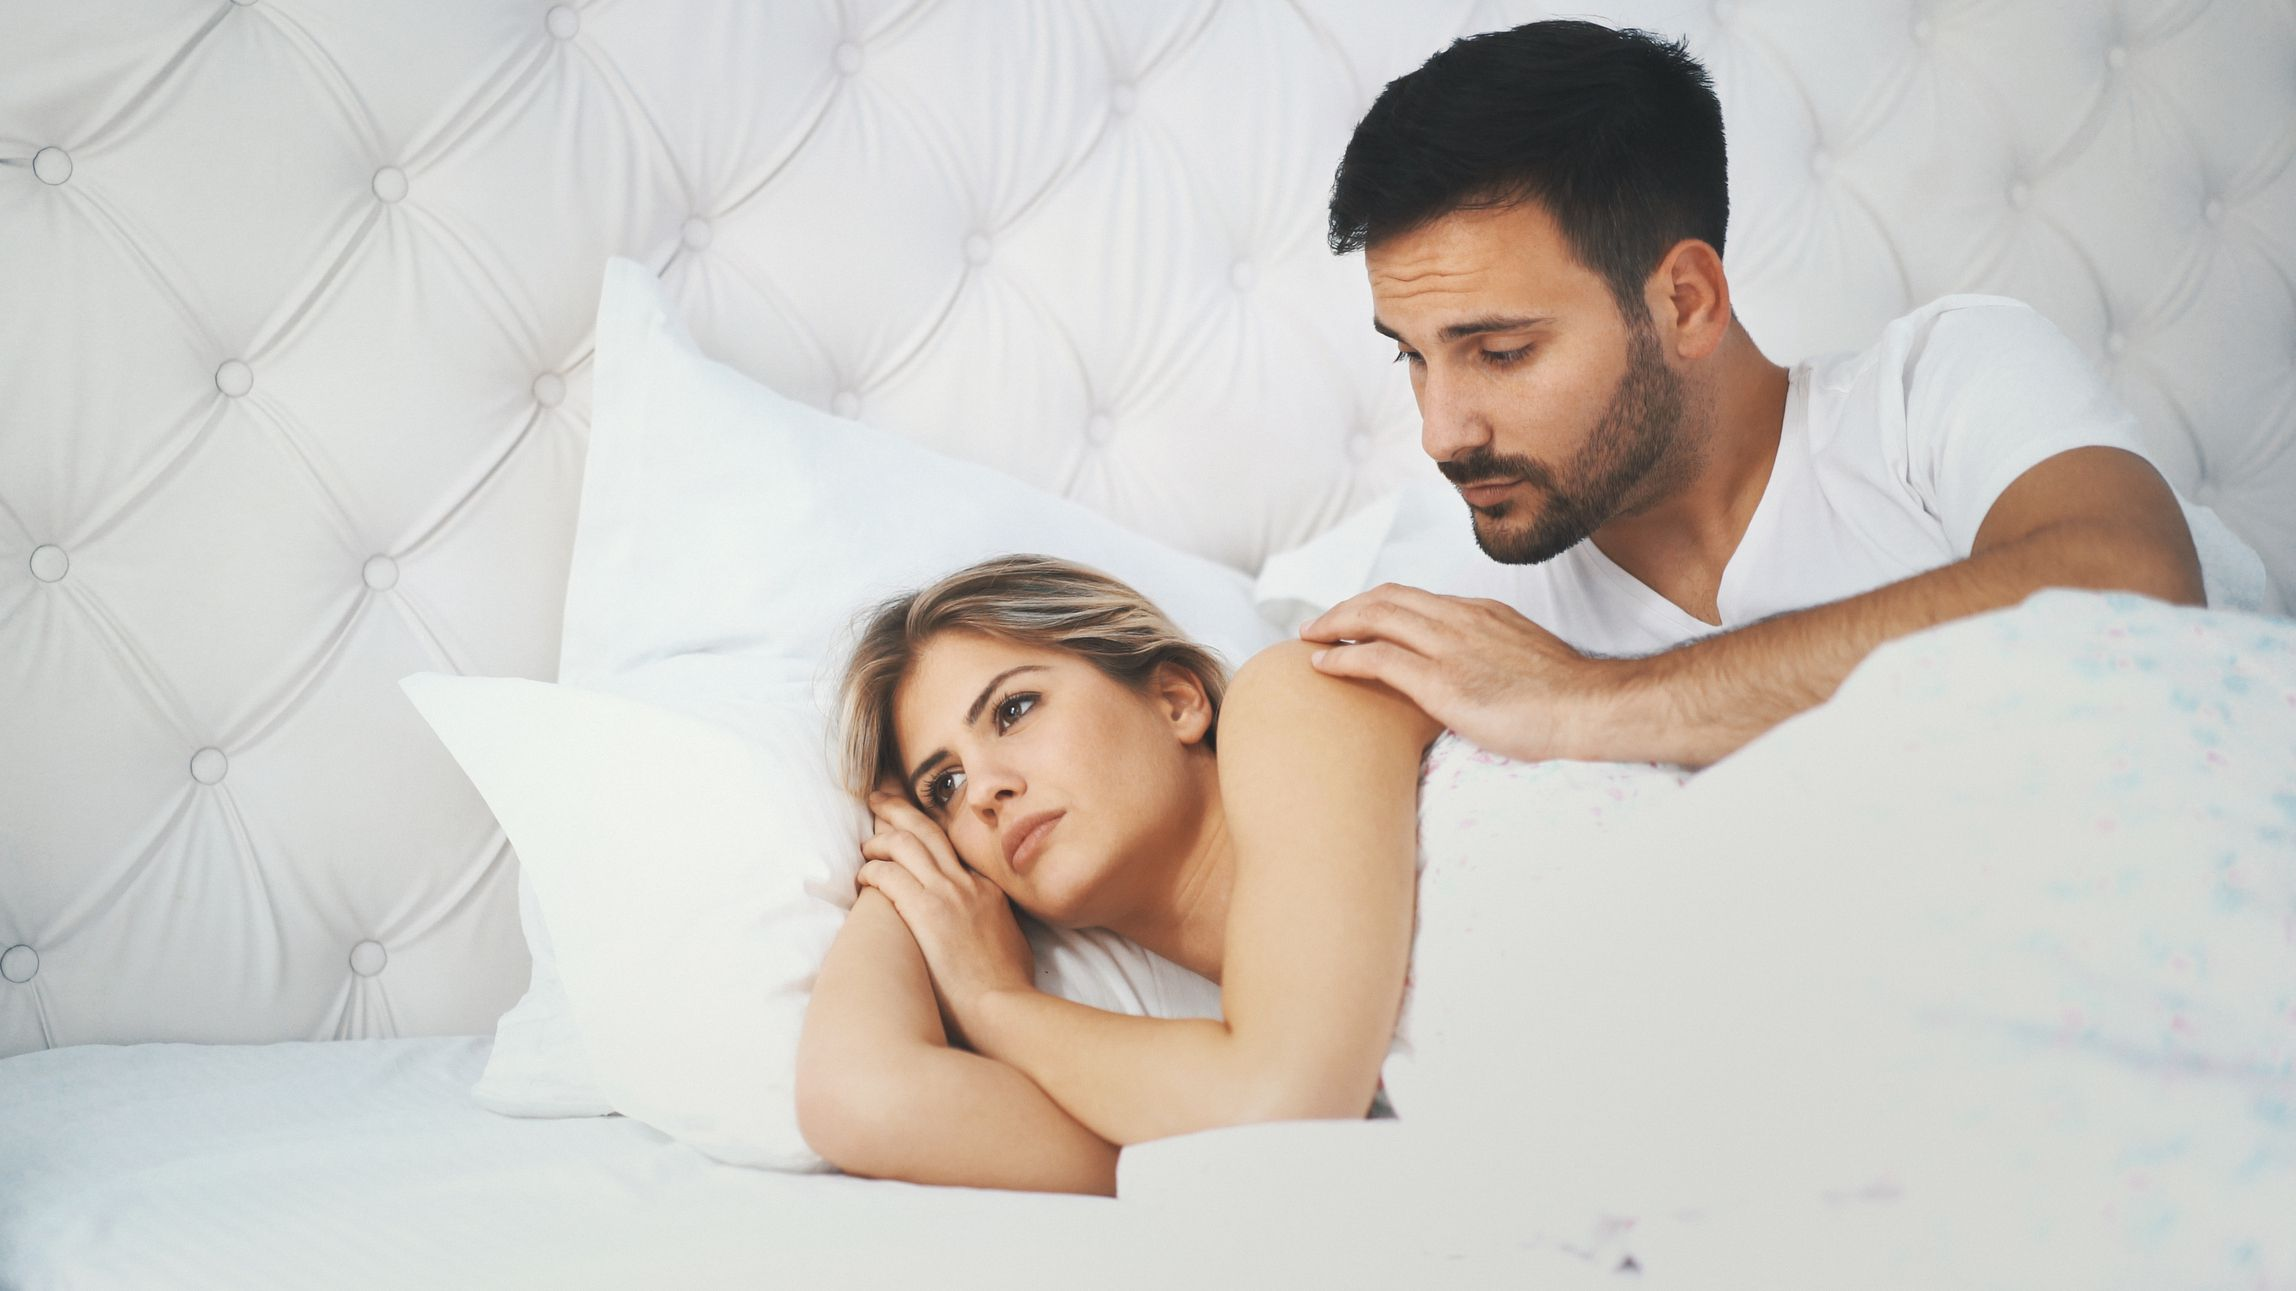 Should You Give A Cheating Spouse A Second Chance